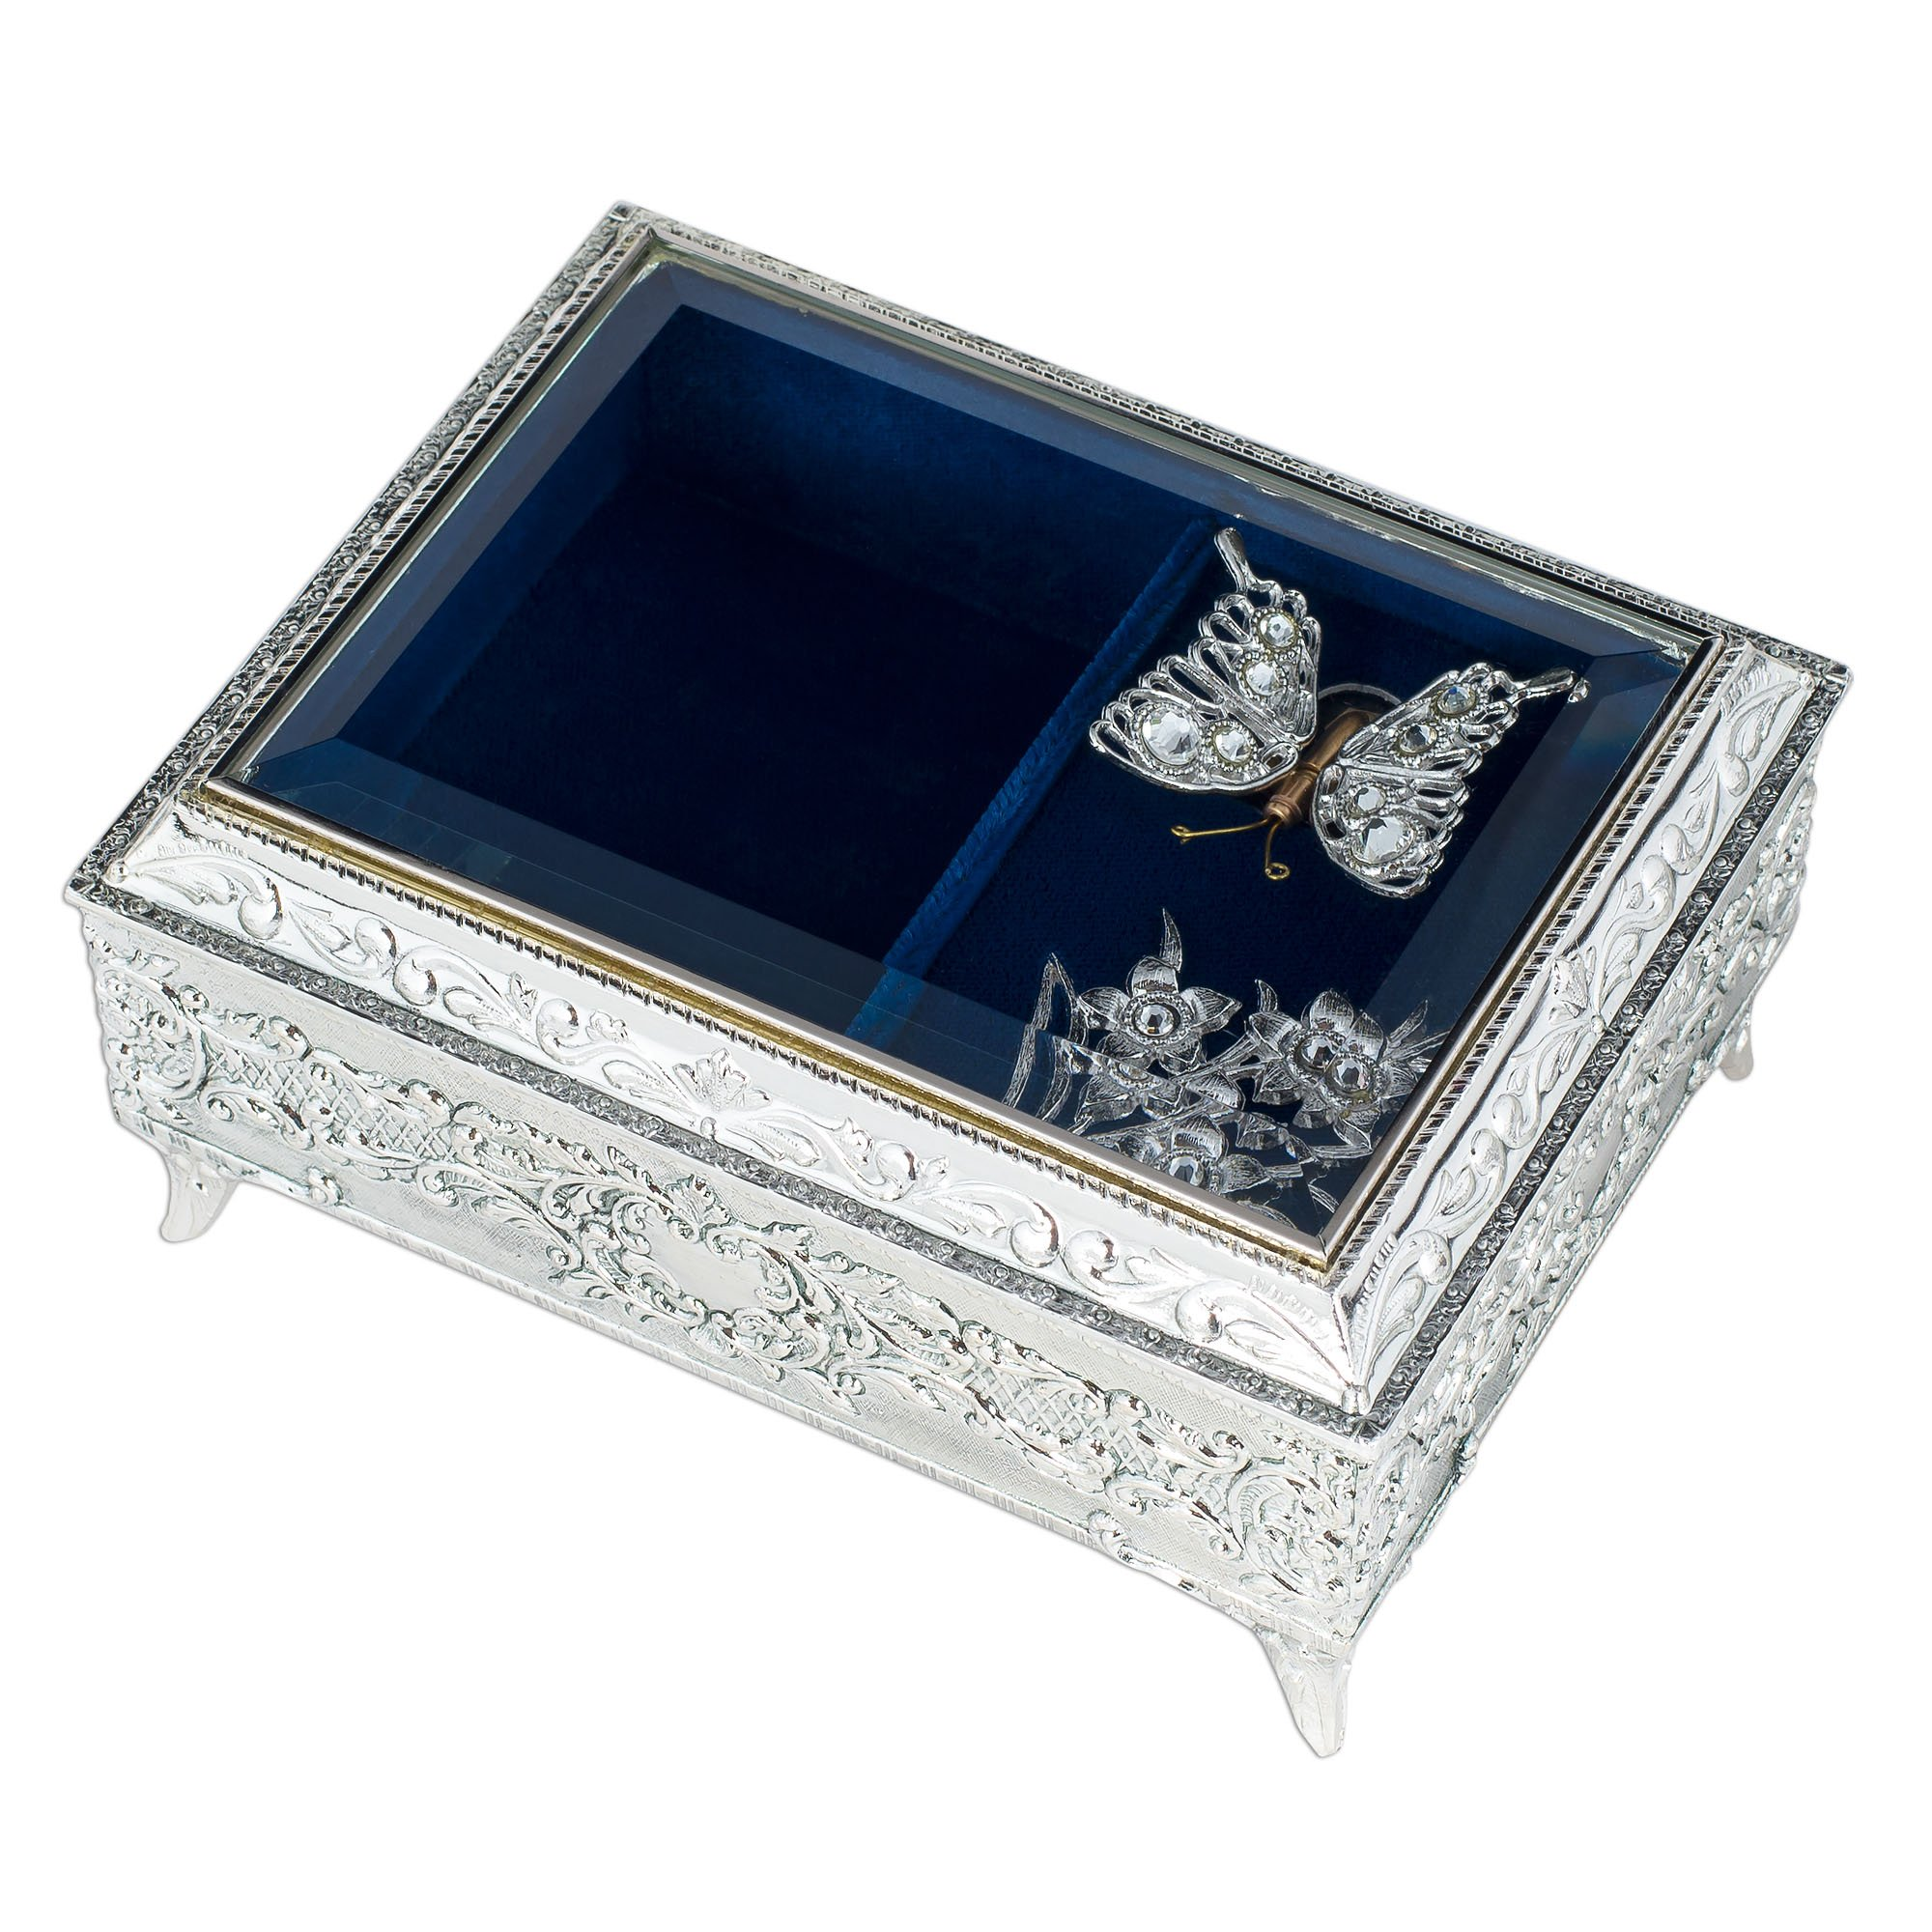 Metal and Glass Jewelry Music Box with Swarovski Crystals - Plays Rachmaninoff 18th Variation